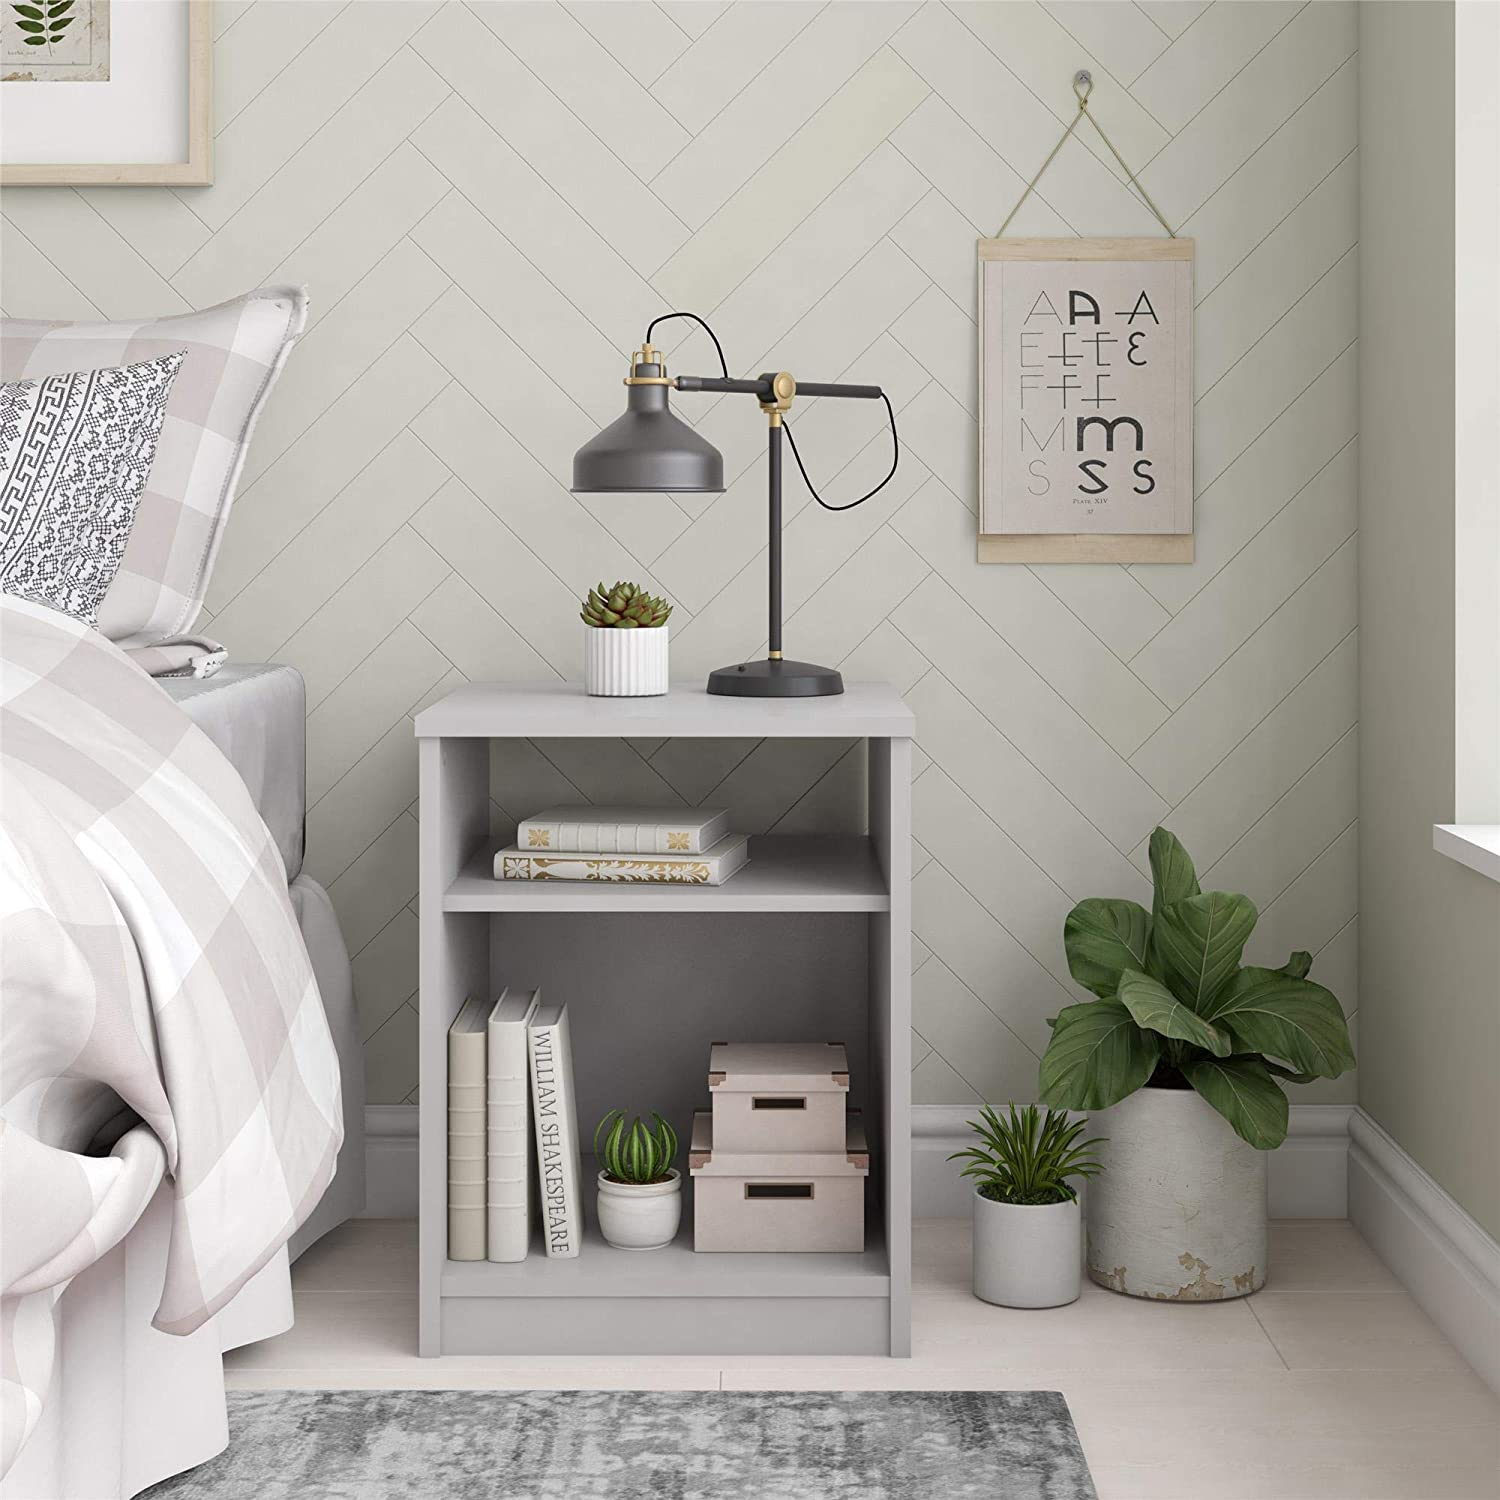 Mainstays Classic Look Nightstand Features Open Top Shelf and Bottom Cubby with Table Lamp, Dove Gray